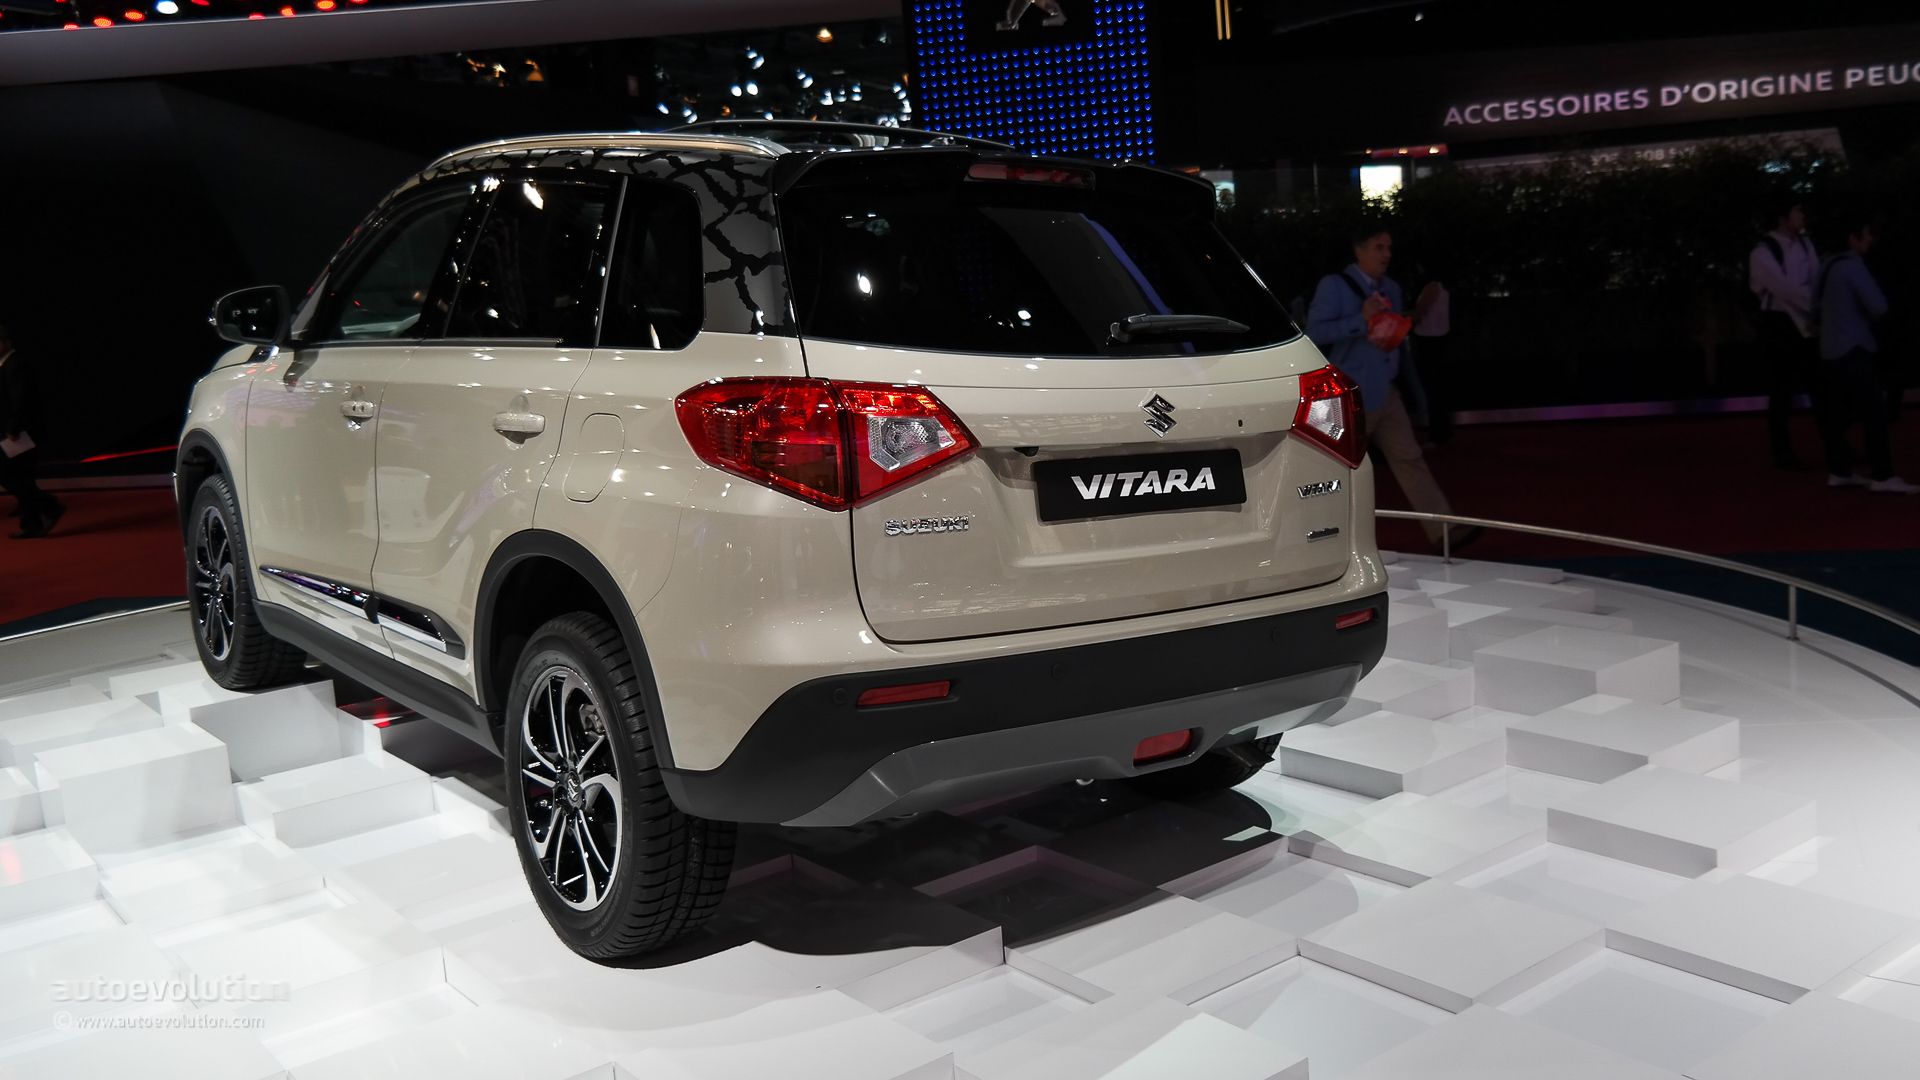 The All-New Suzuki Vitara Makes First Appearance at Paris 2014 [Live Photos] - autoevolution